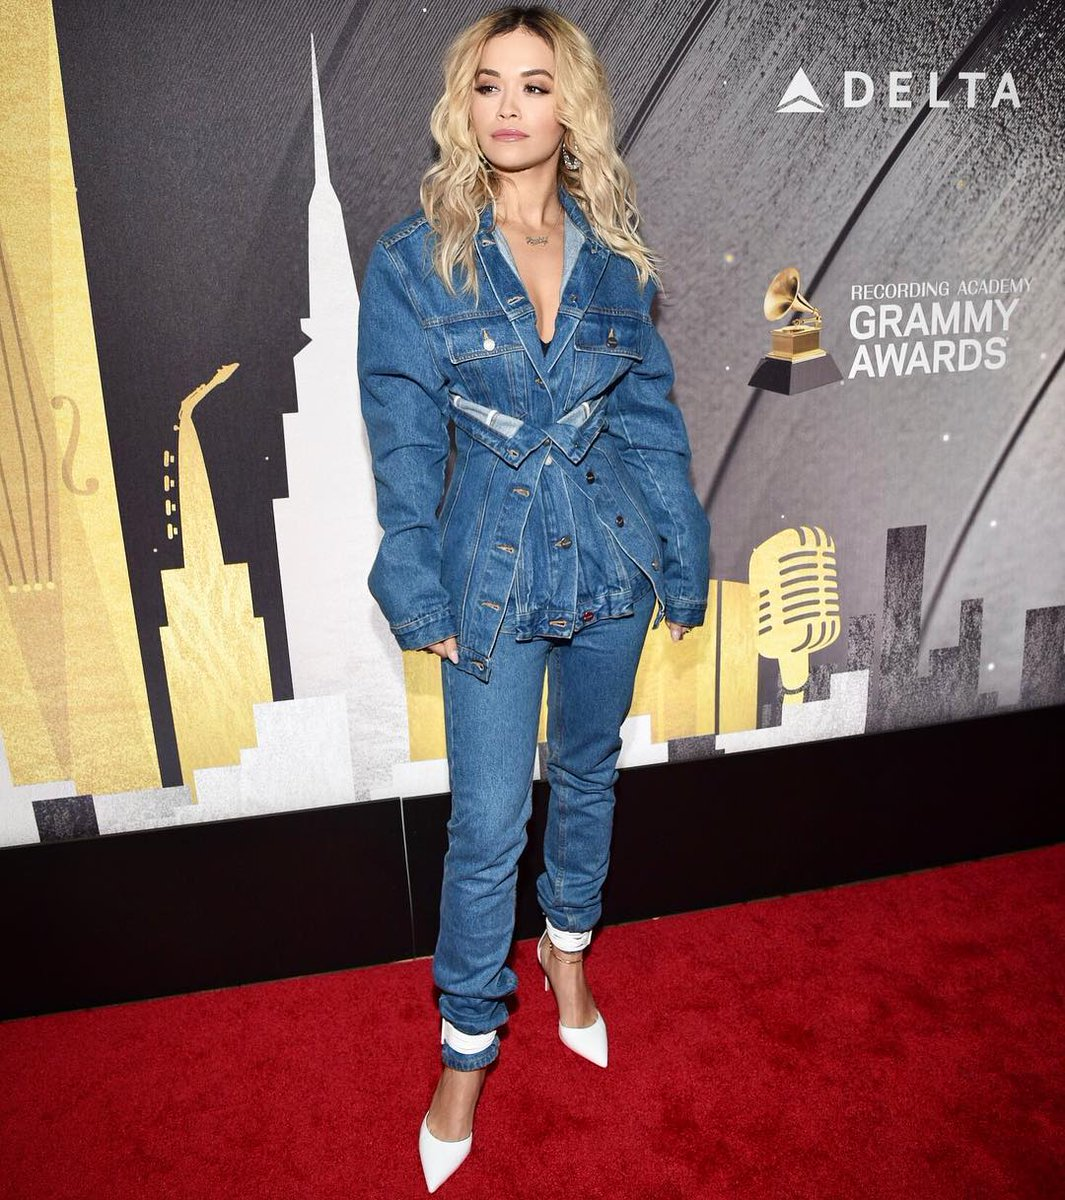 Denim on Denim with @delta ???????? #grammyweek #AD https://t.co/Rm0nBa1PV4